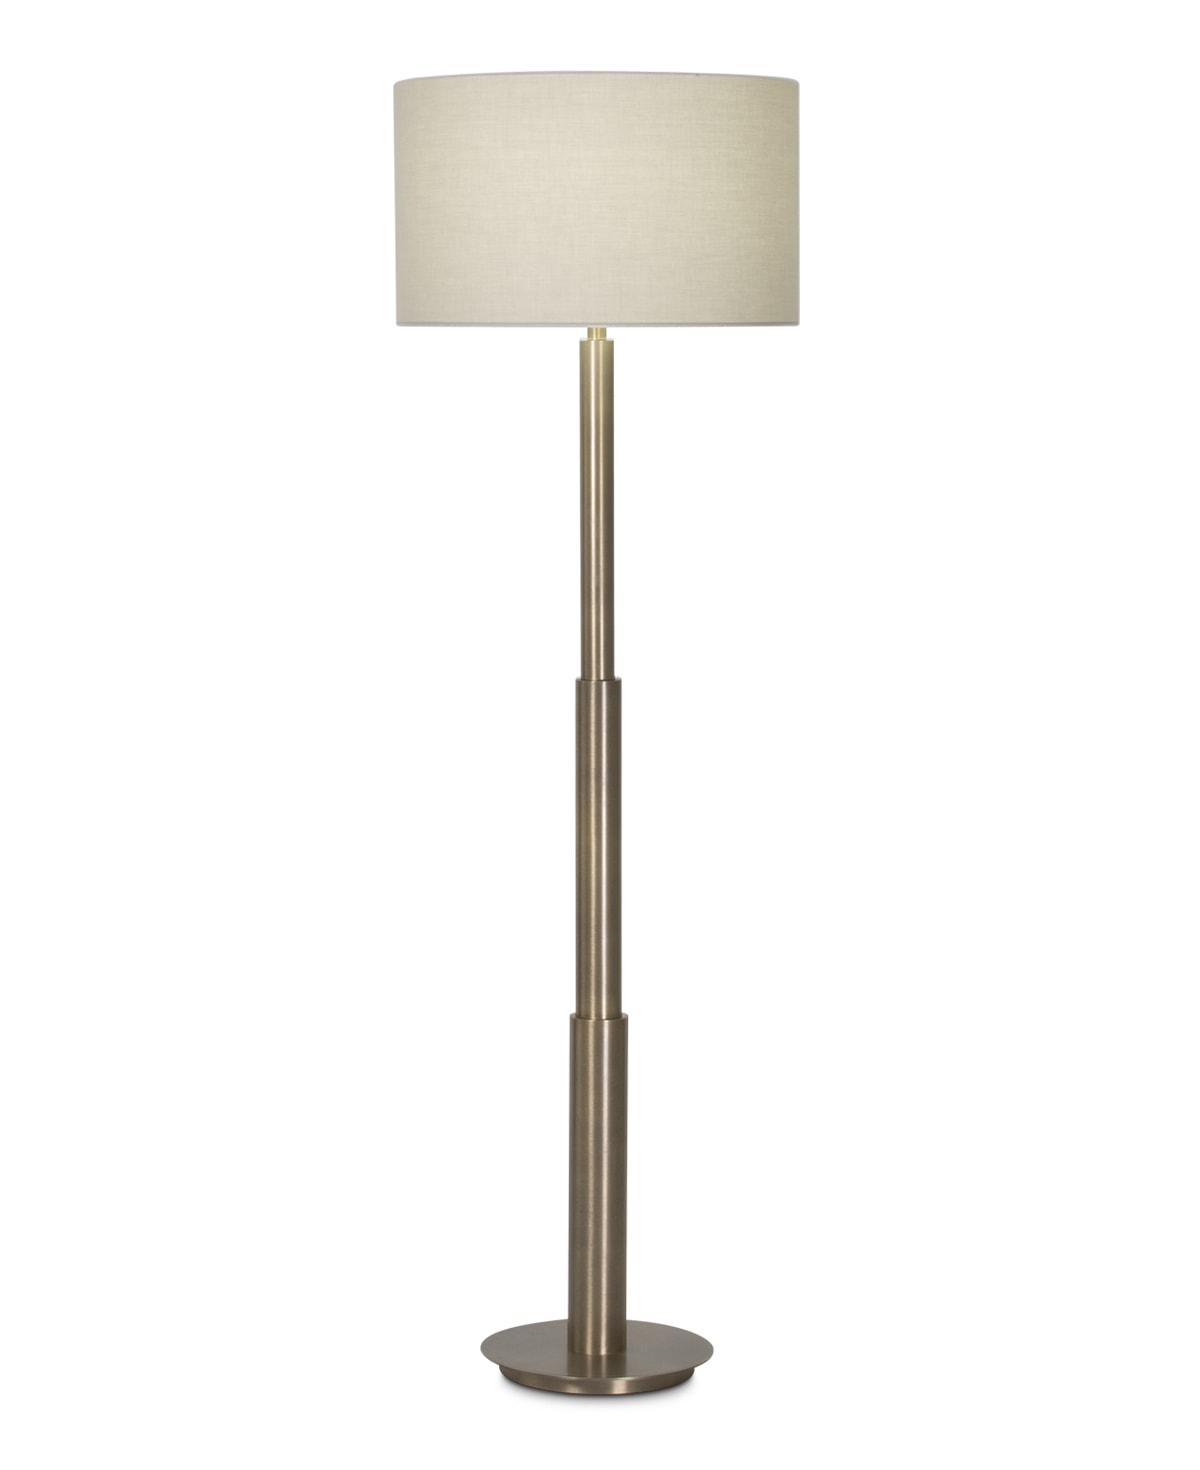 FlowDecor Hailey Floor Lamp in metal with antique brass finish and beige cotton drum shade (# 3980)